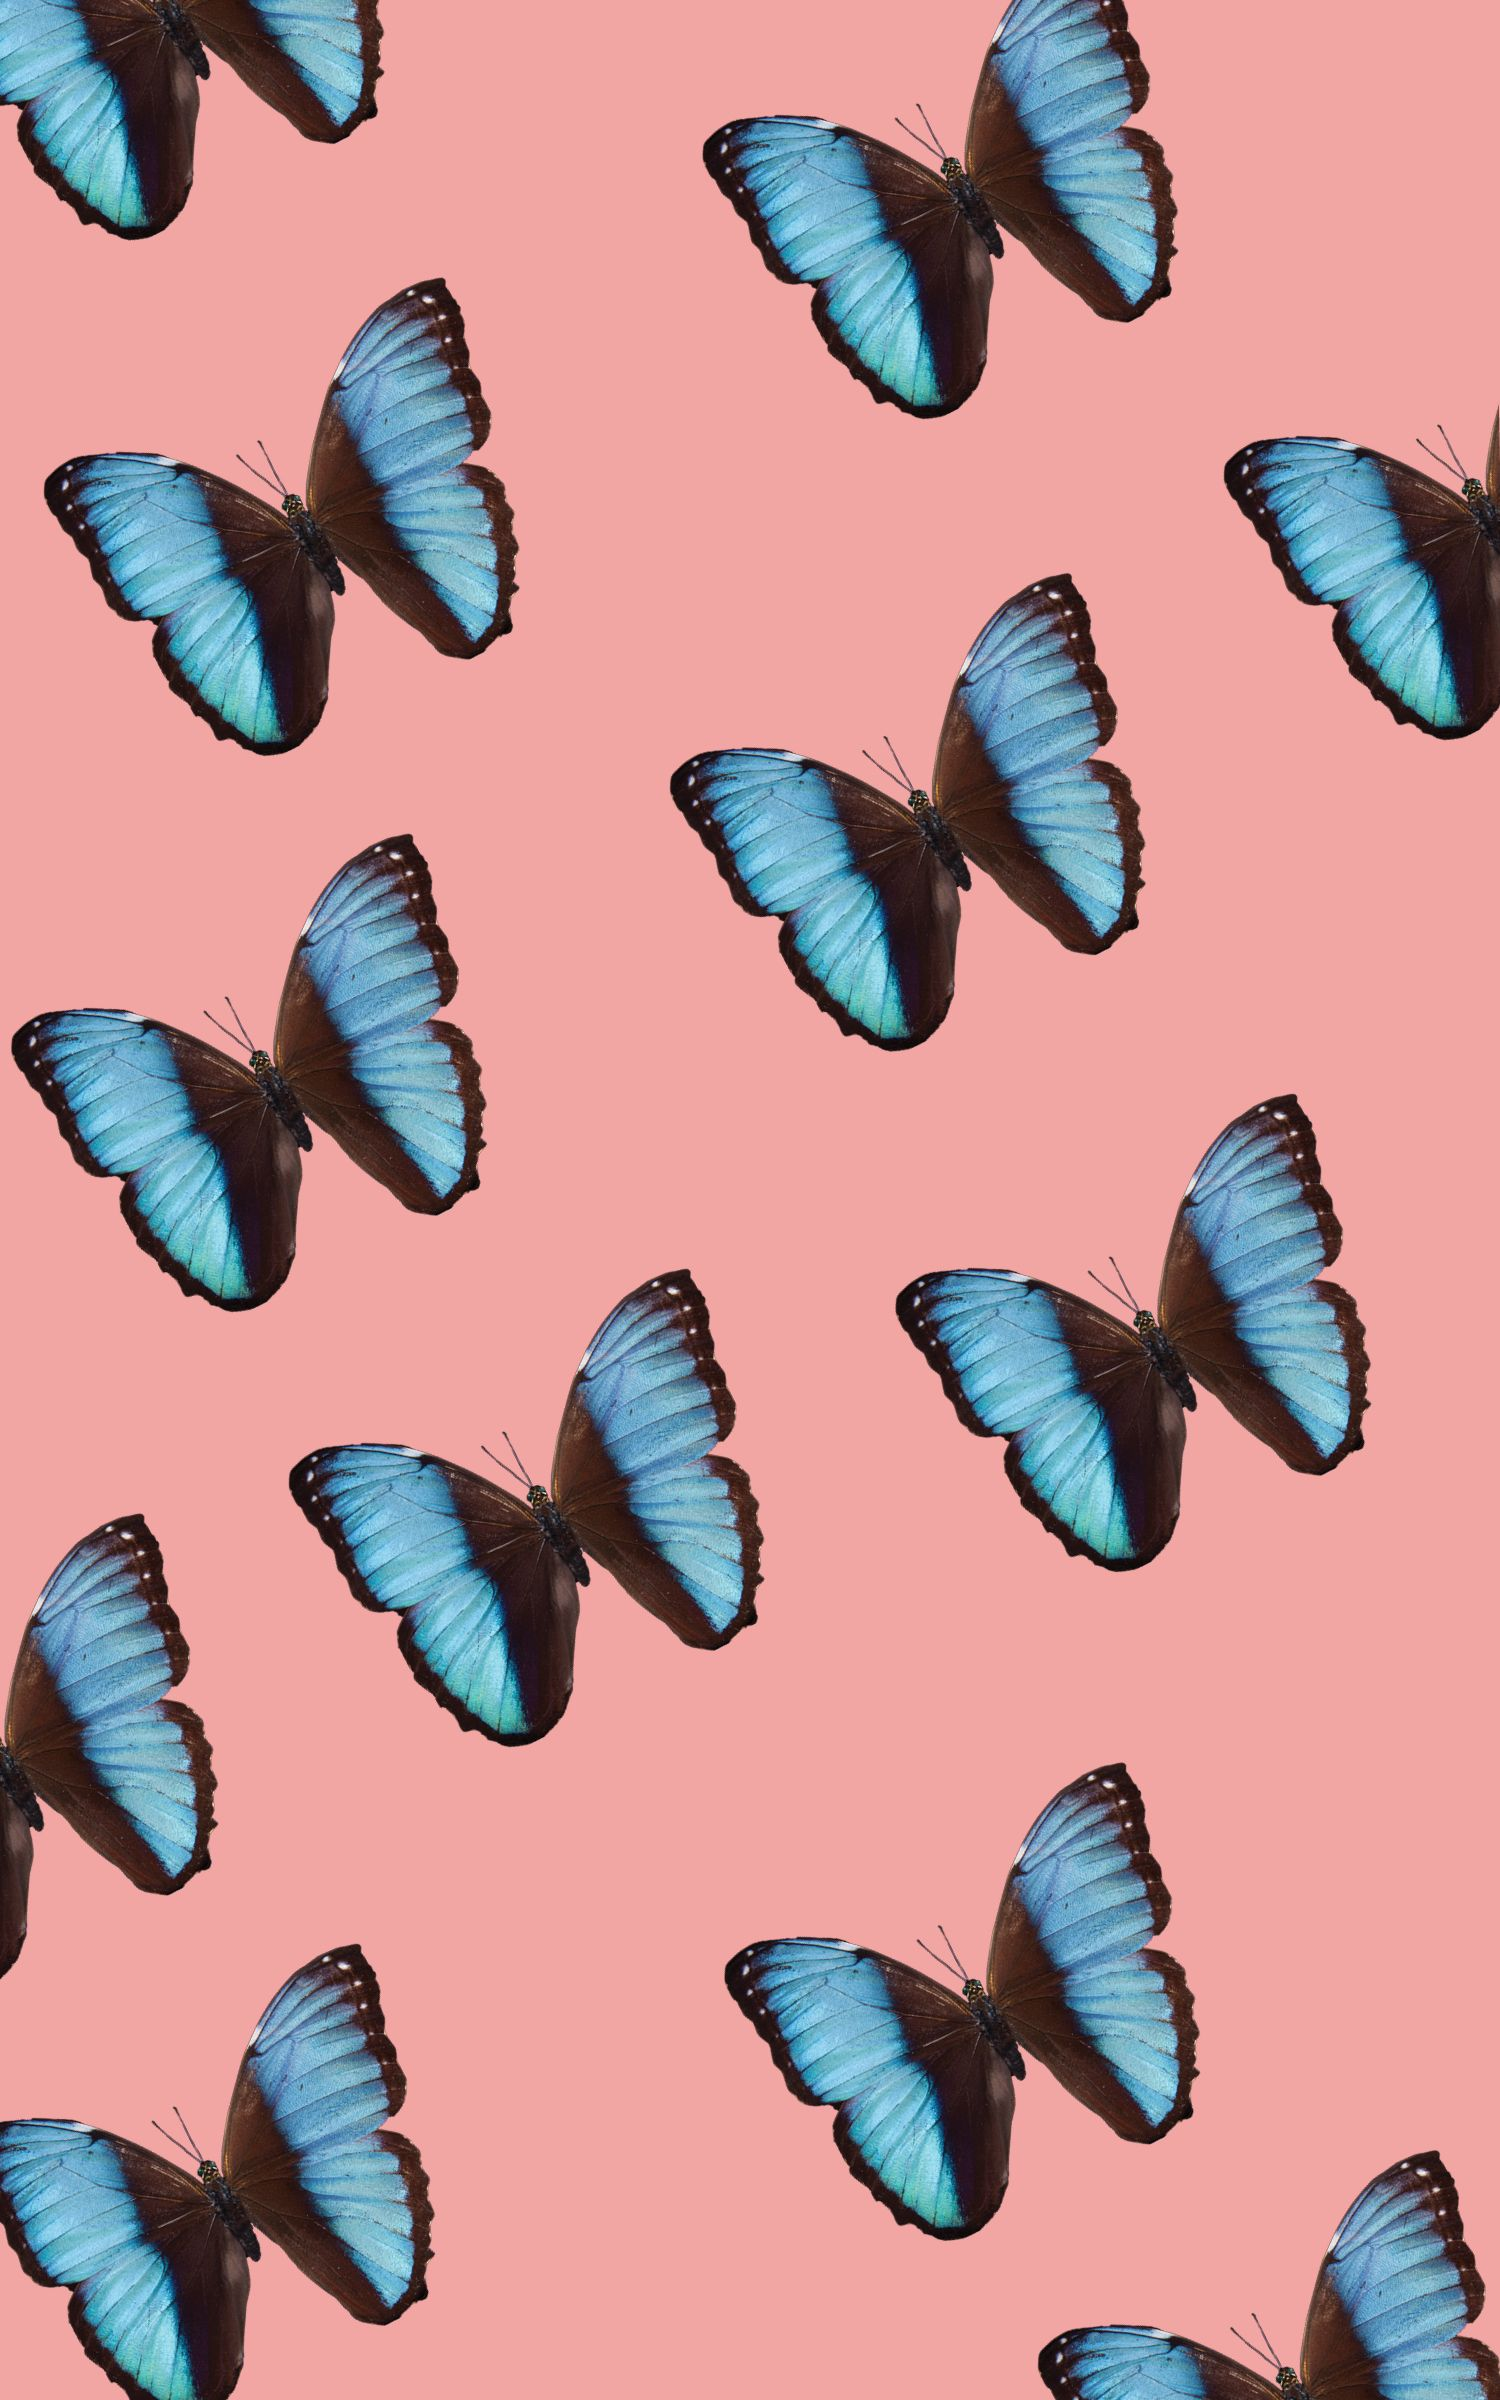 butterflies iPhone background Butterfly wallpaper